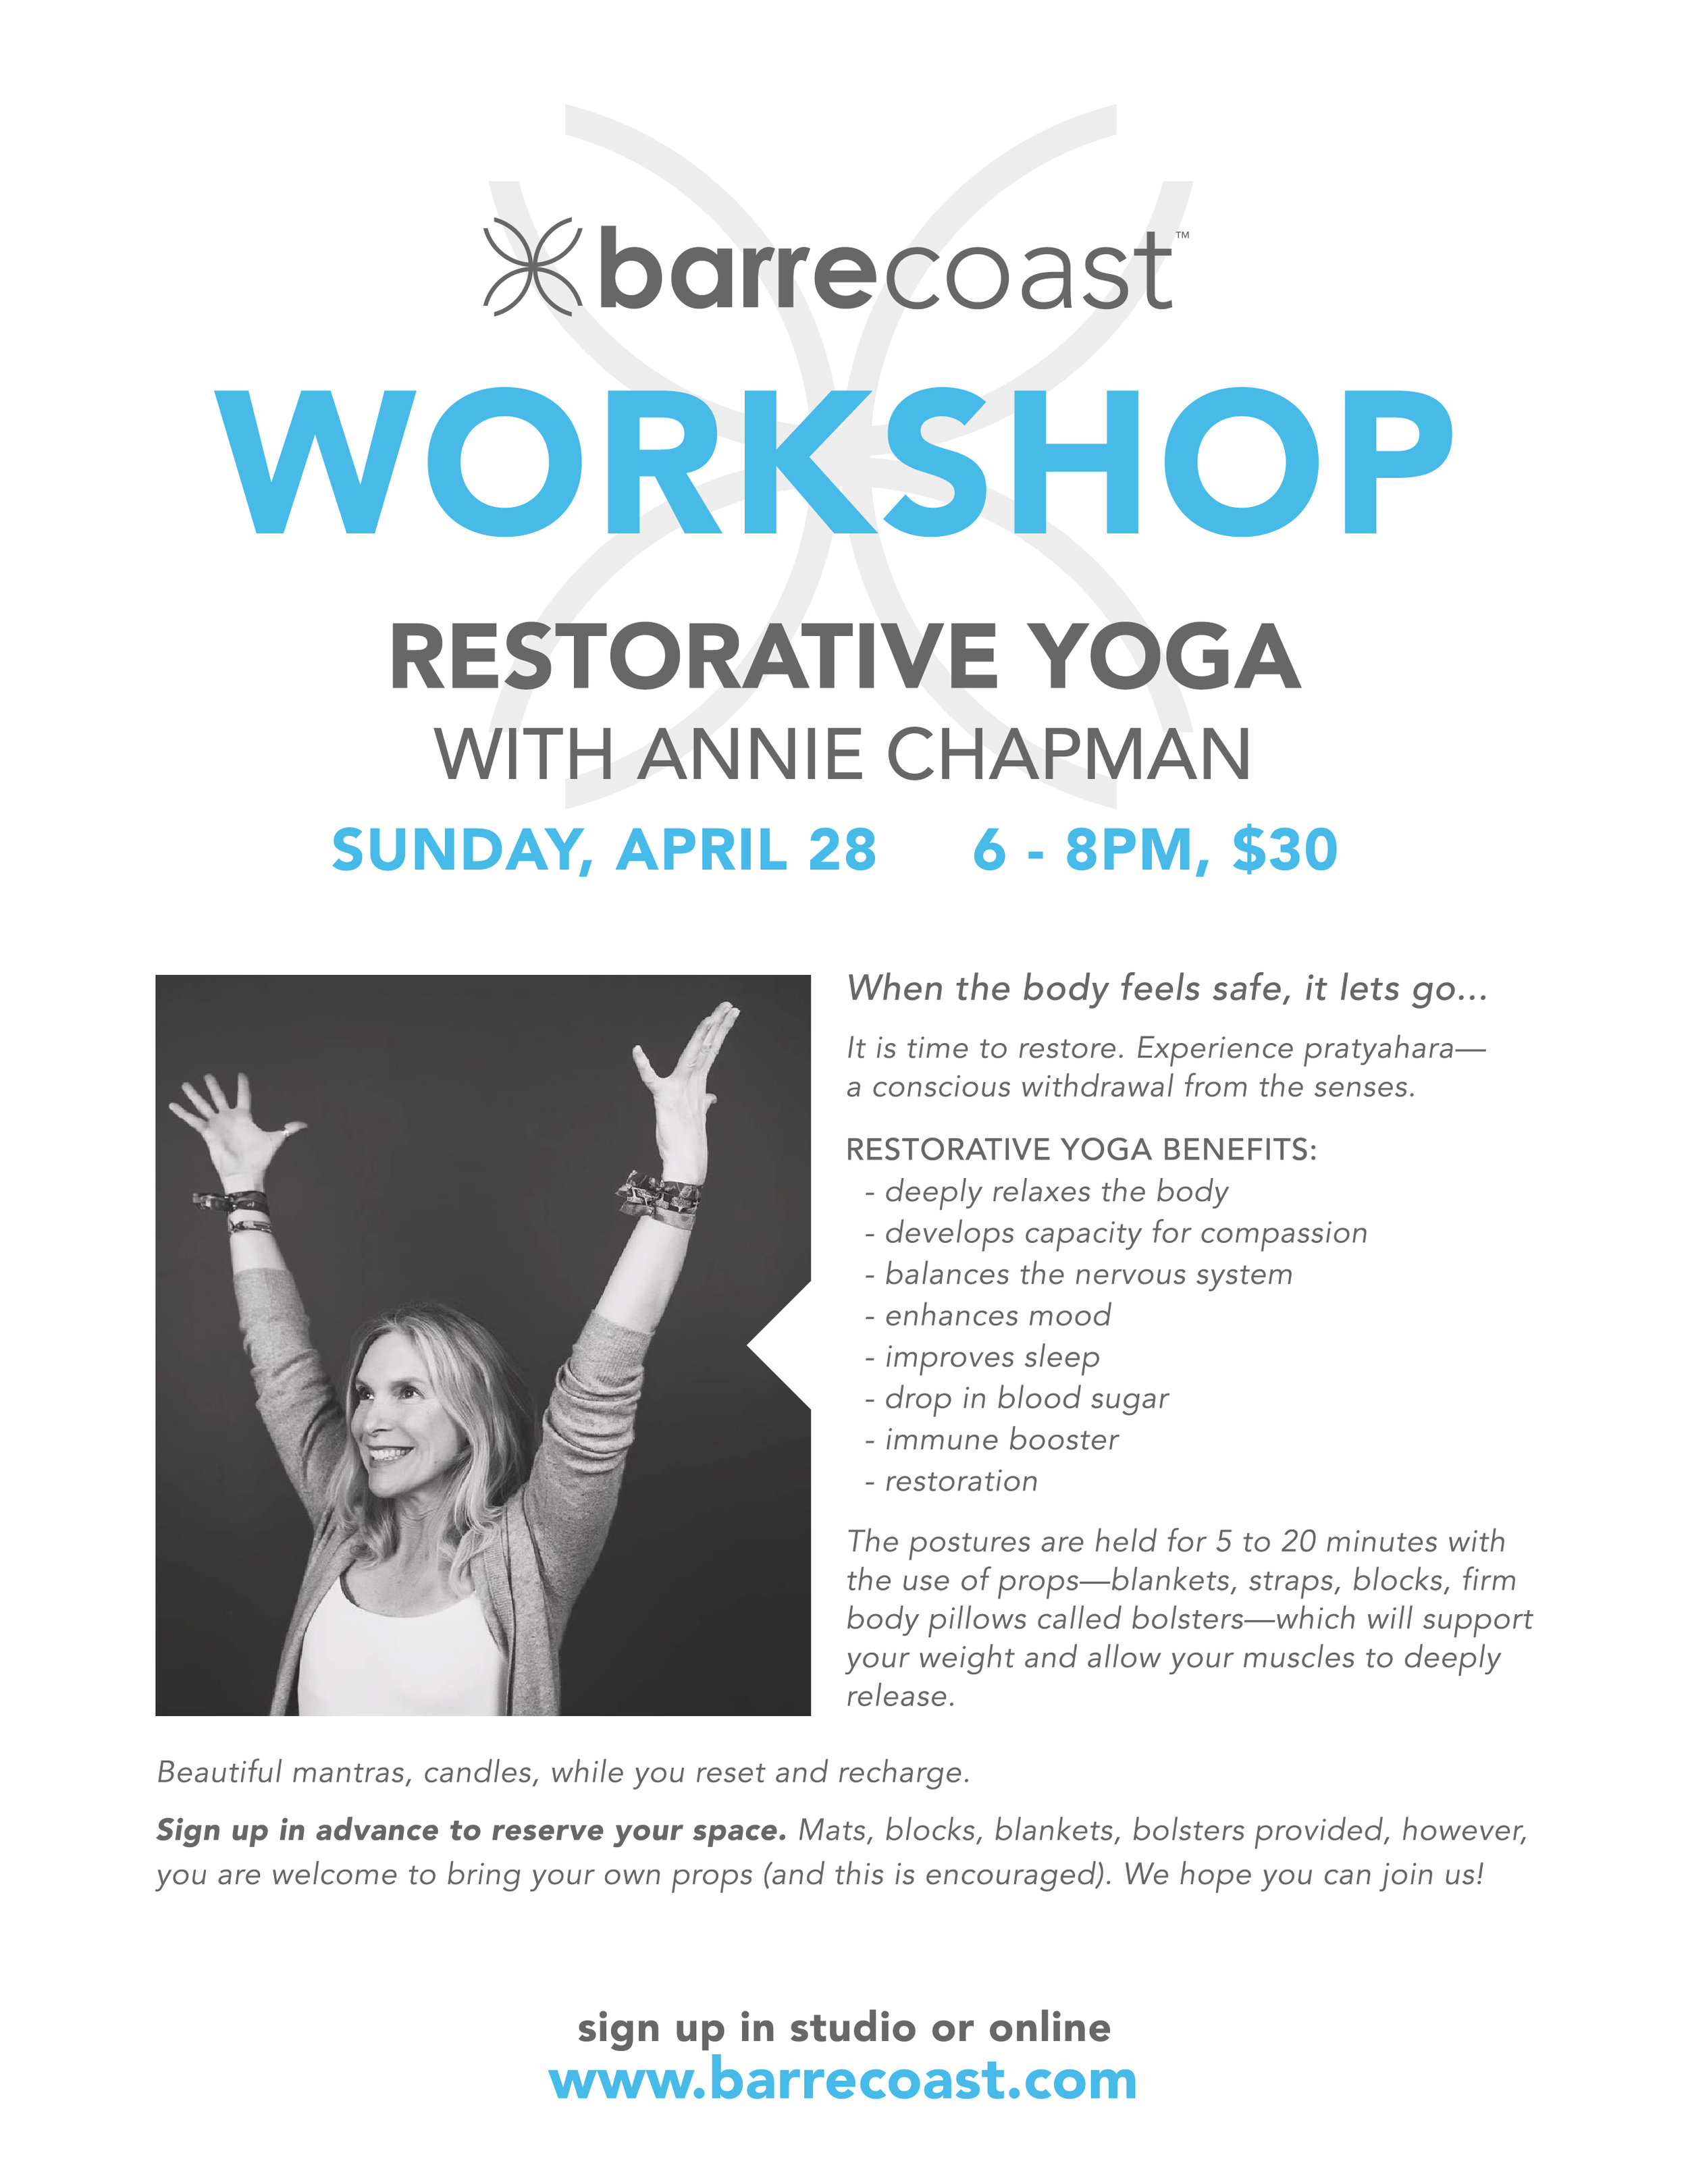 BC_Workshop_RestorativeYoga_v1-01.jpg